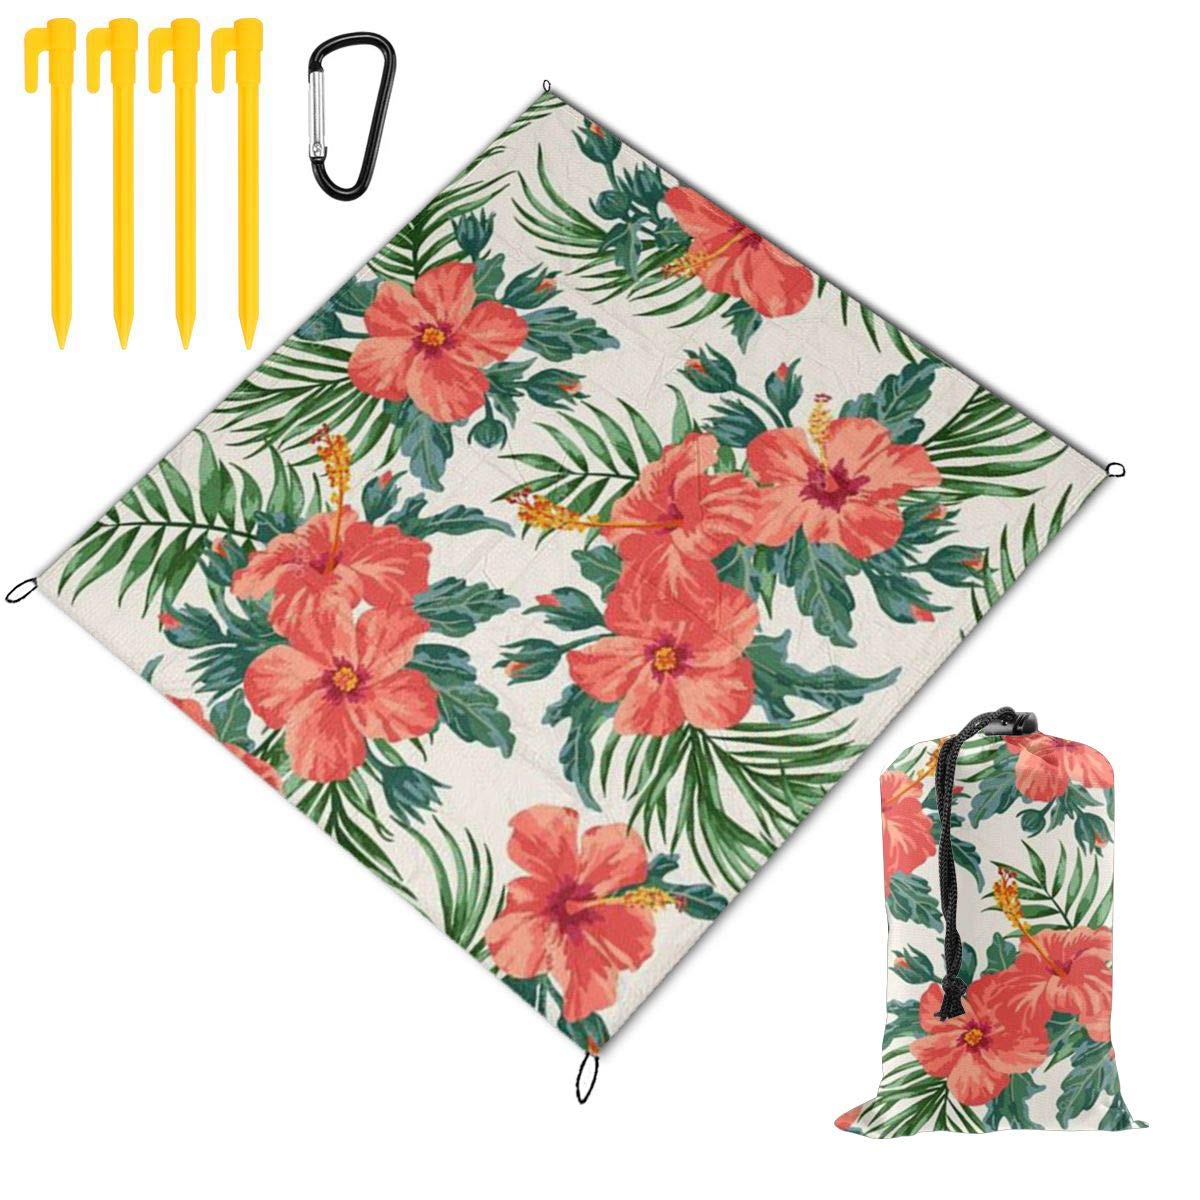 FunnyCustom Picnic Blanket Portable Waterproof Tropical Leaves and Flowers Picnic Mat for Beach Camping 79 x 57 Inch